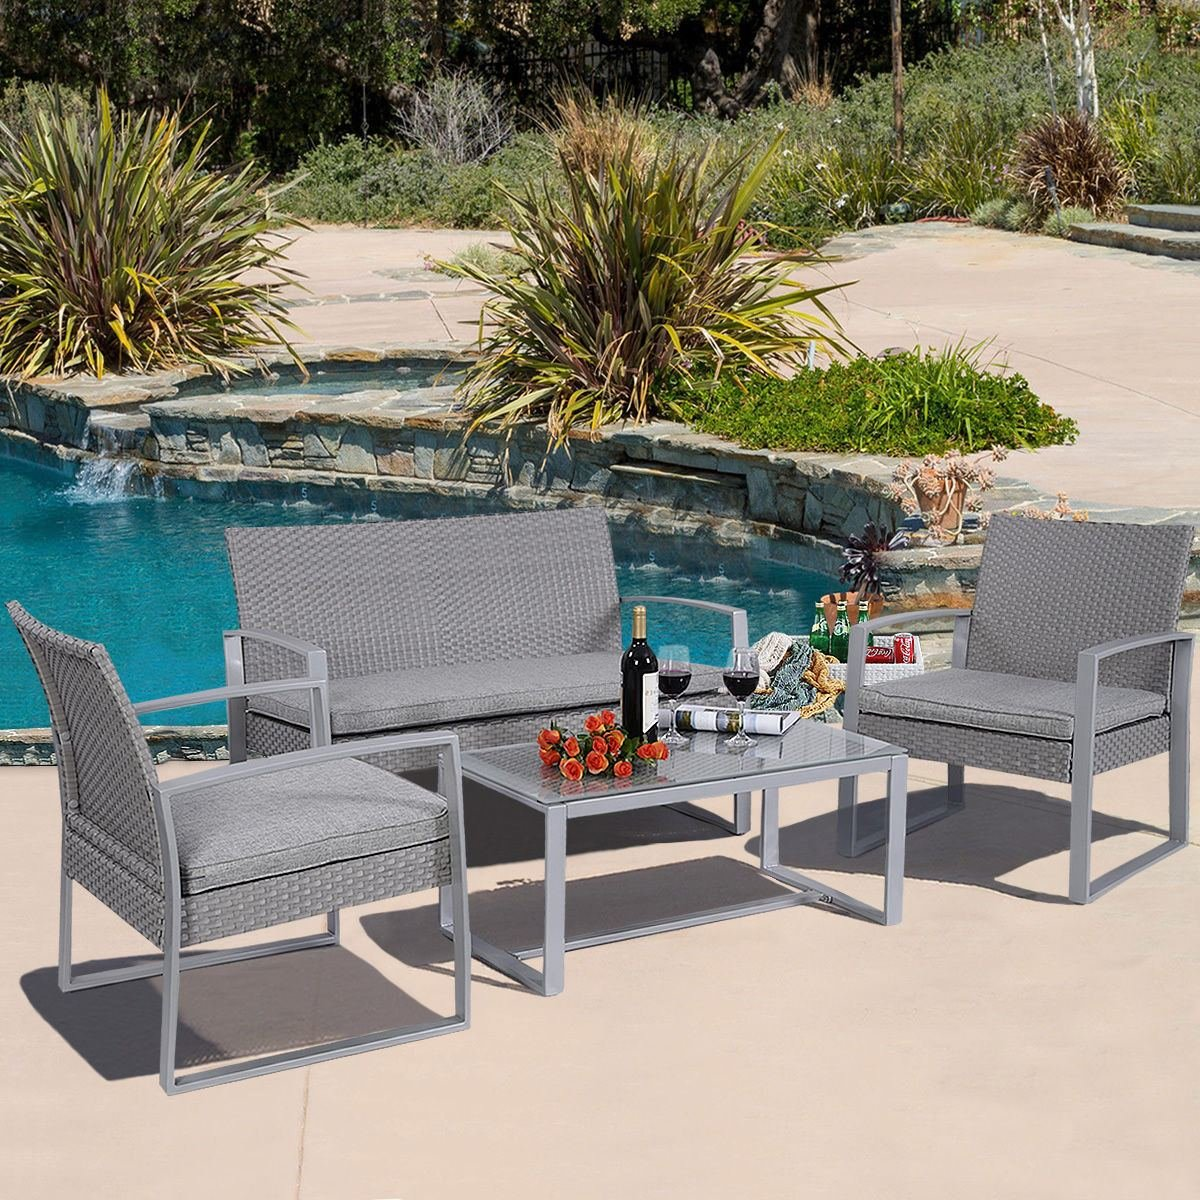 patio outdoor jbeedesigns design set sets options wicker furniture clearance porch